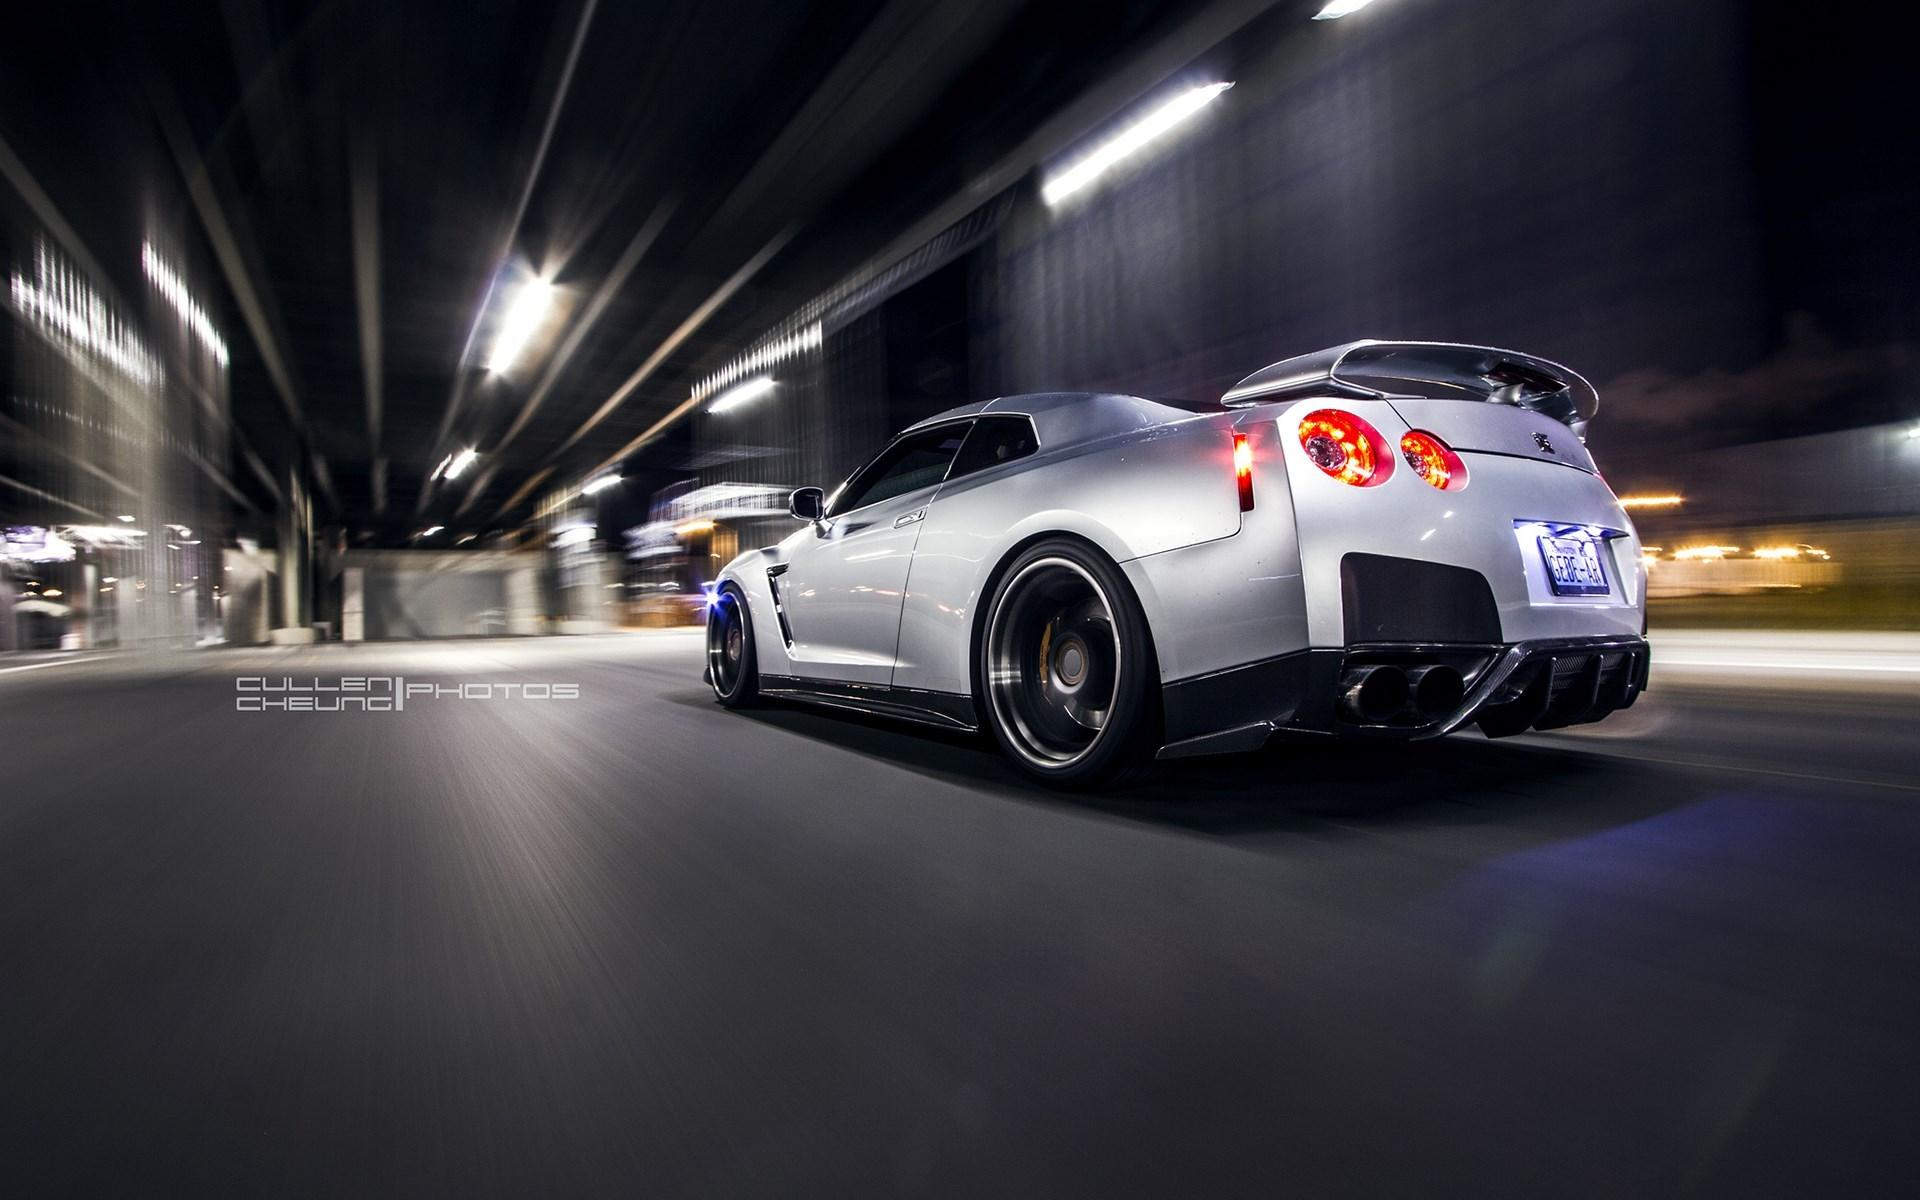 Fast And Furious Cars Wallpapers For Desktop Night Nissan Gt R R35 Car Wallpaper Nature And Landscape